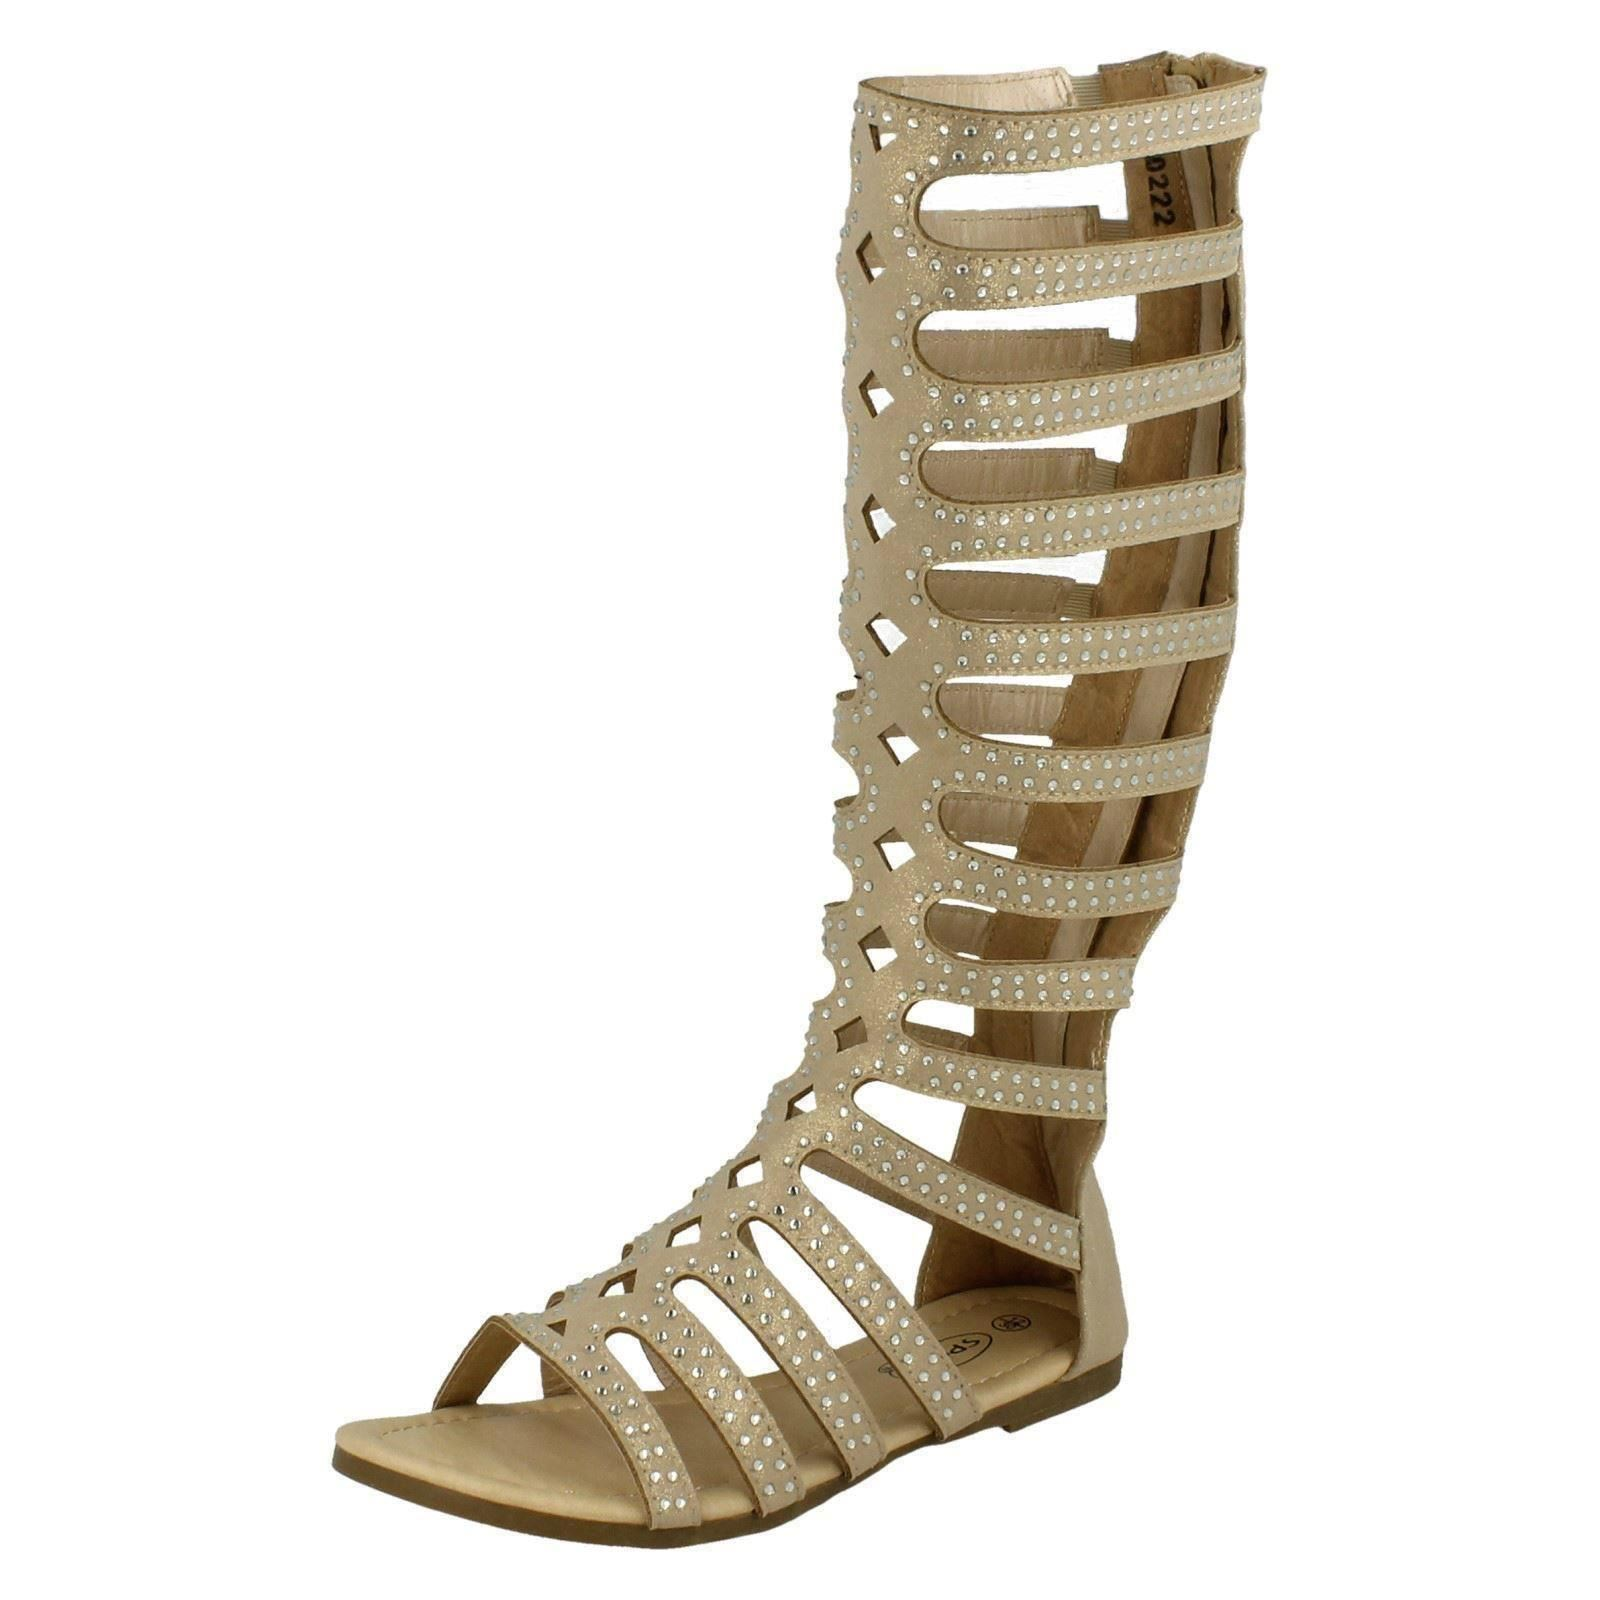 Girls Spot On Knee High Gladiator Sandals - H0222